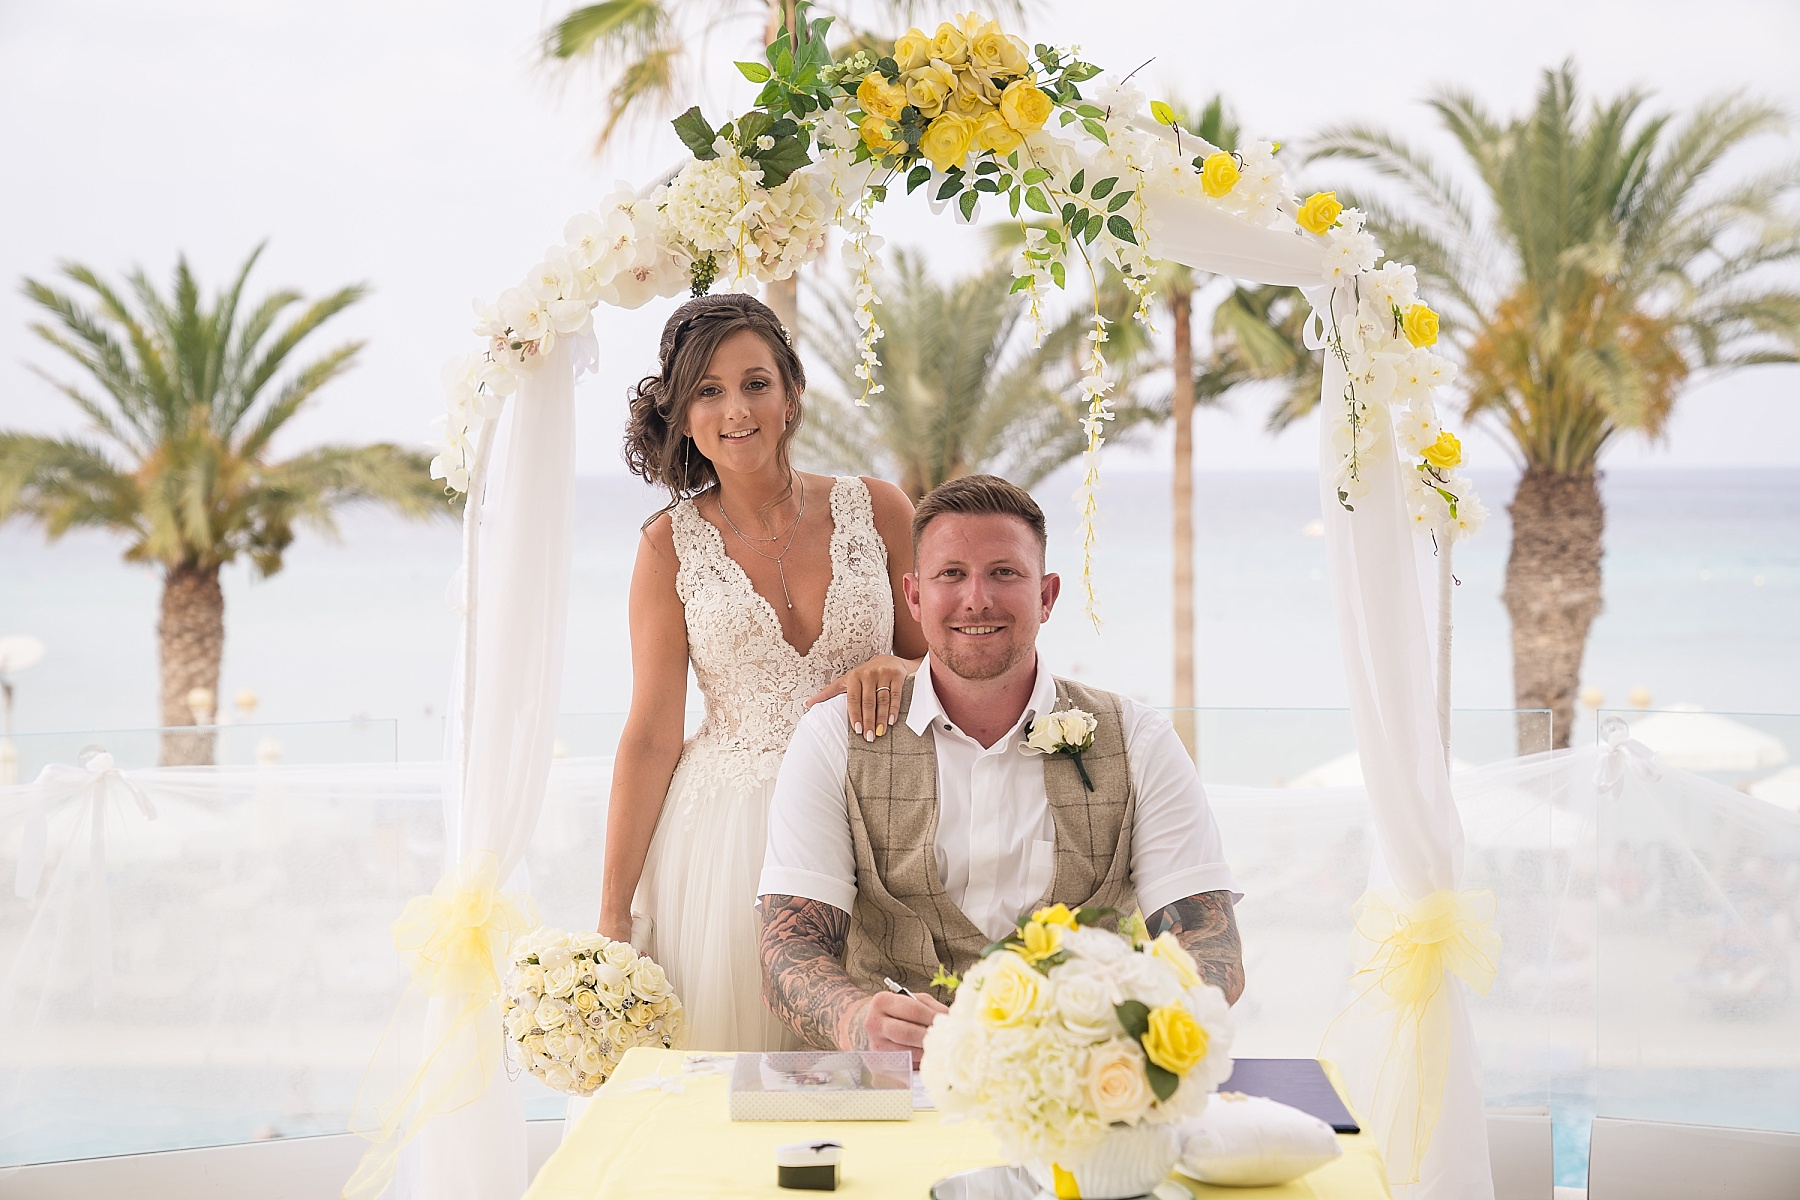 Sunrise Beach Hotel – Caley & Liam